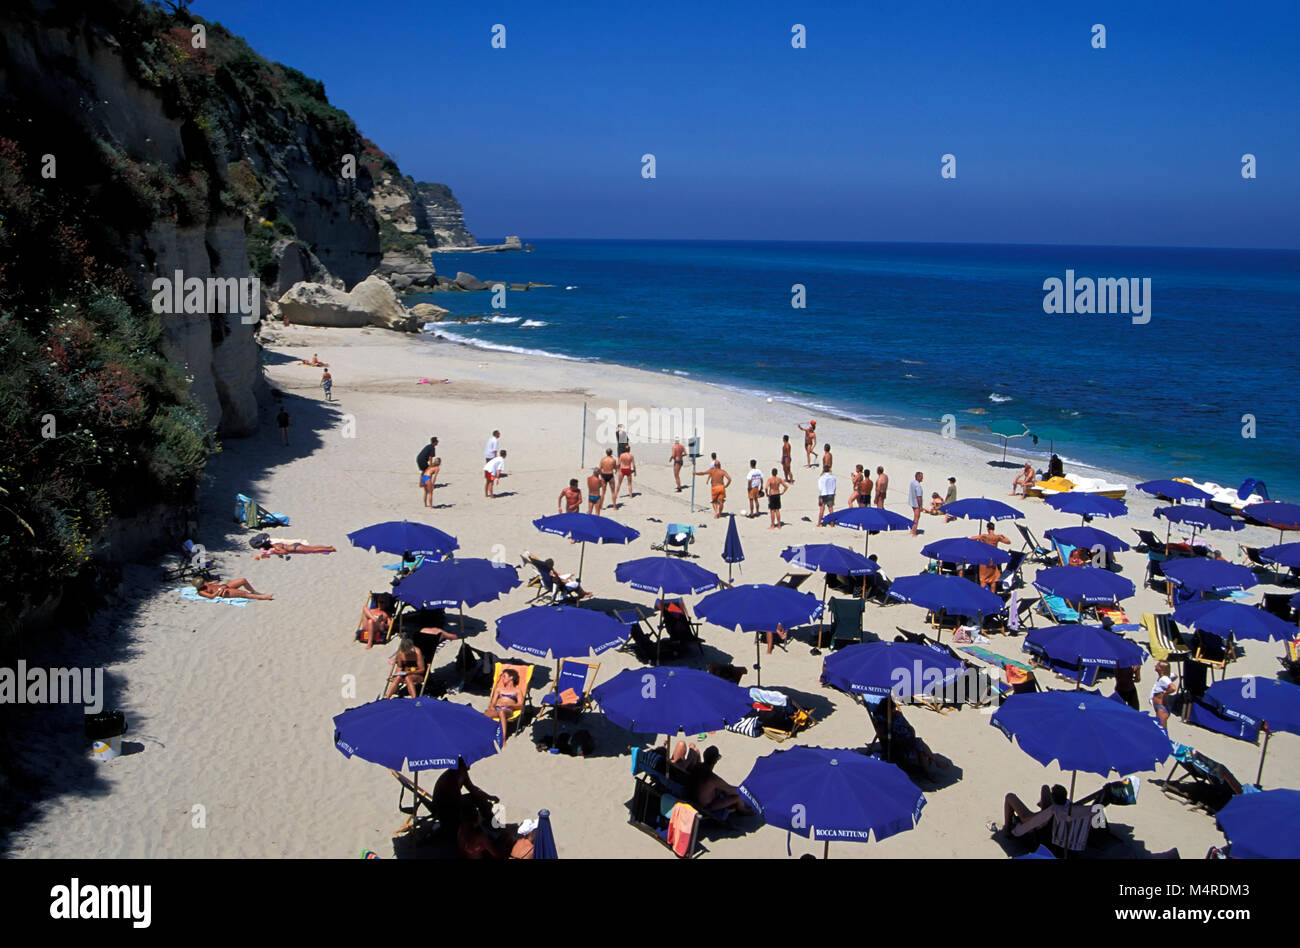 Tropea beach, Calabria, Italy Stock Photo